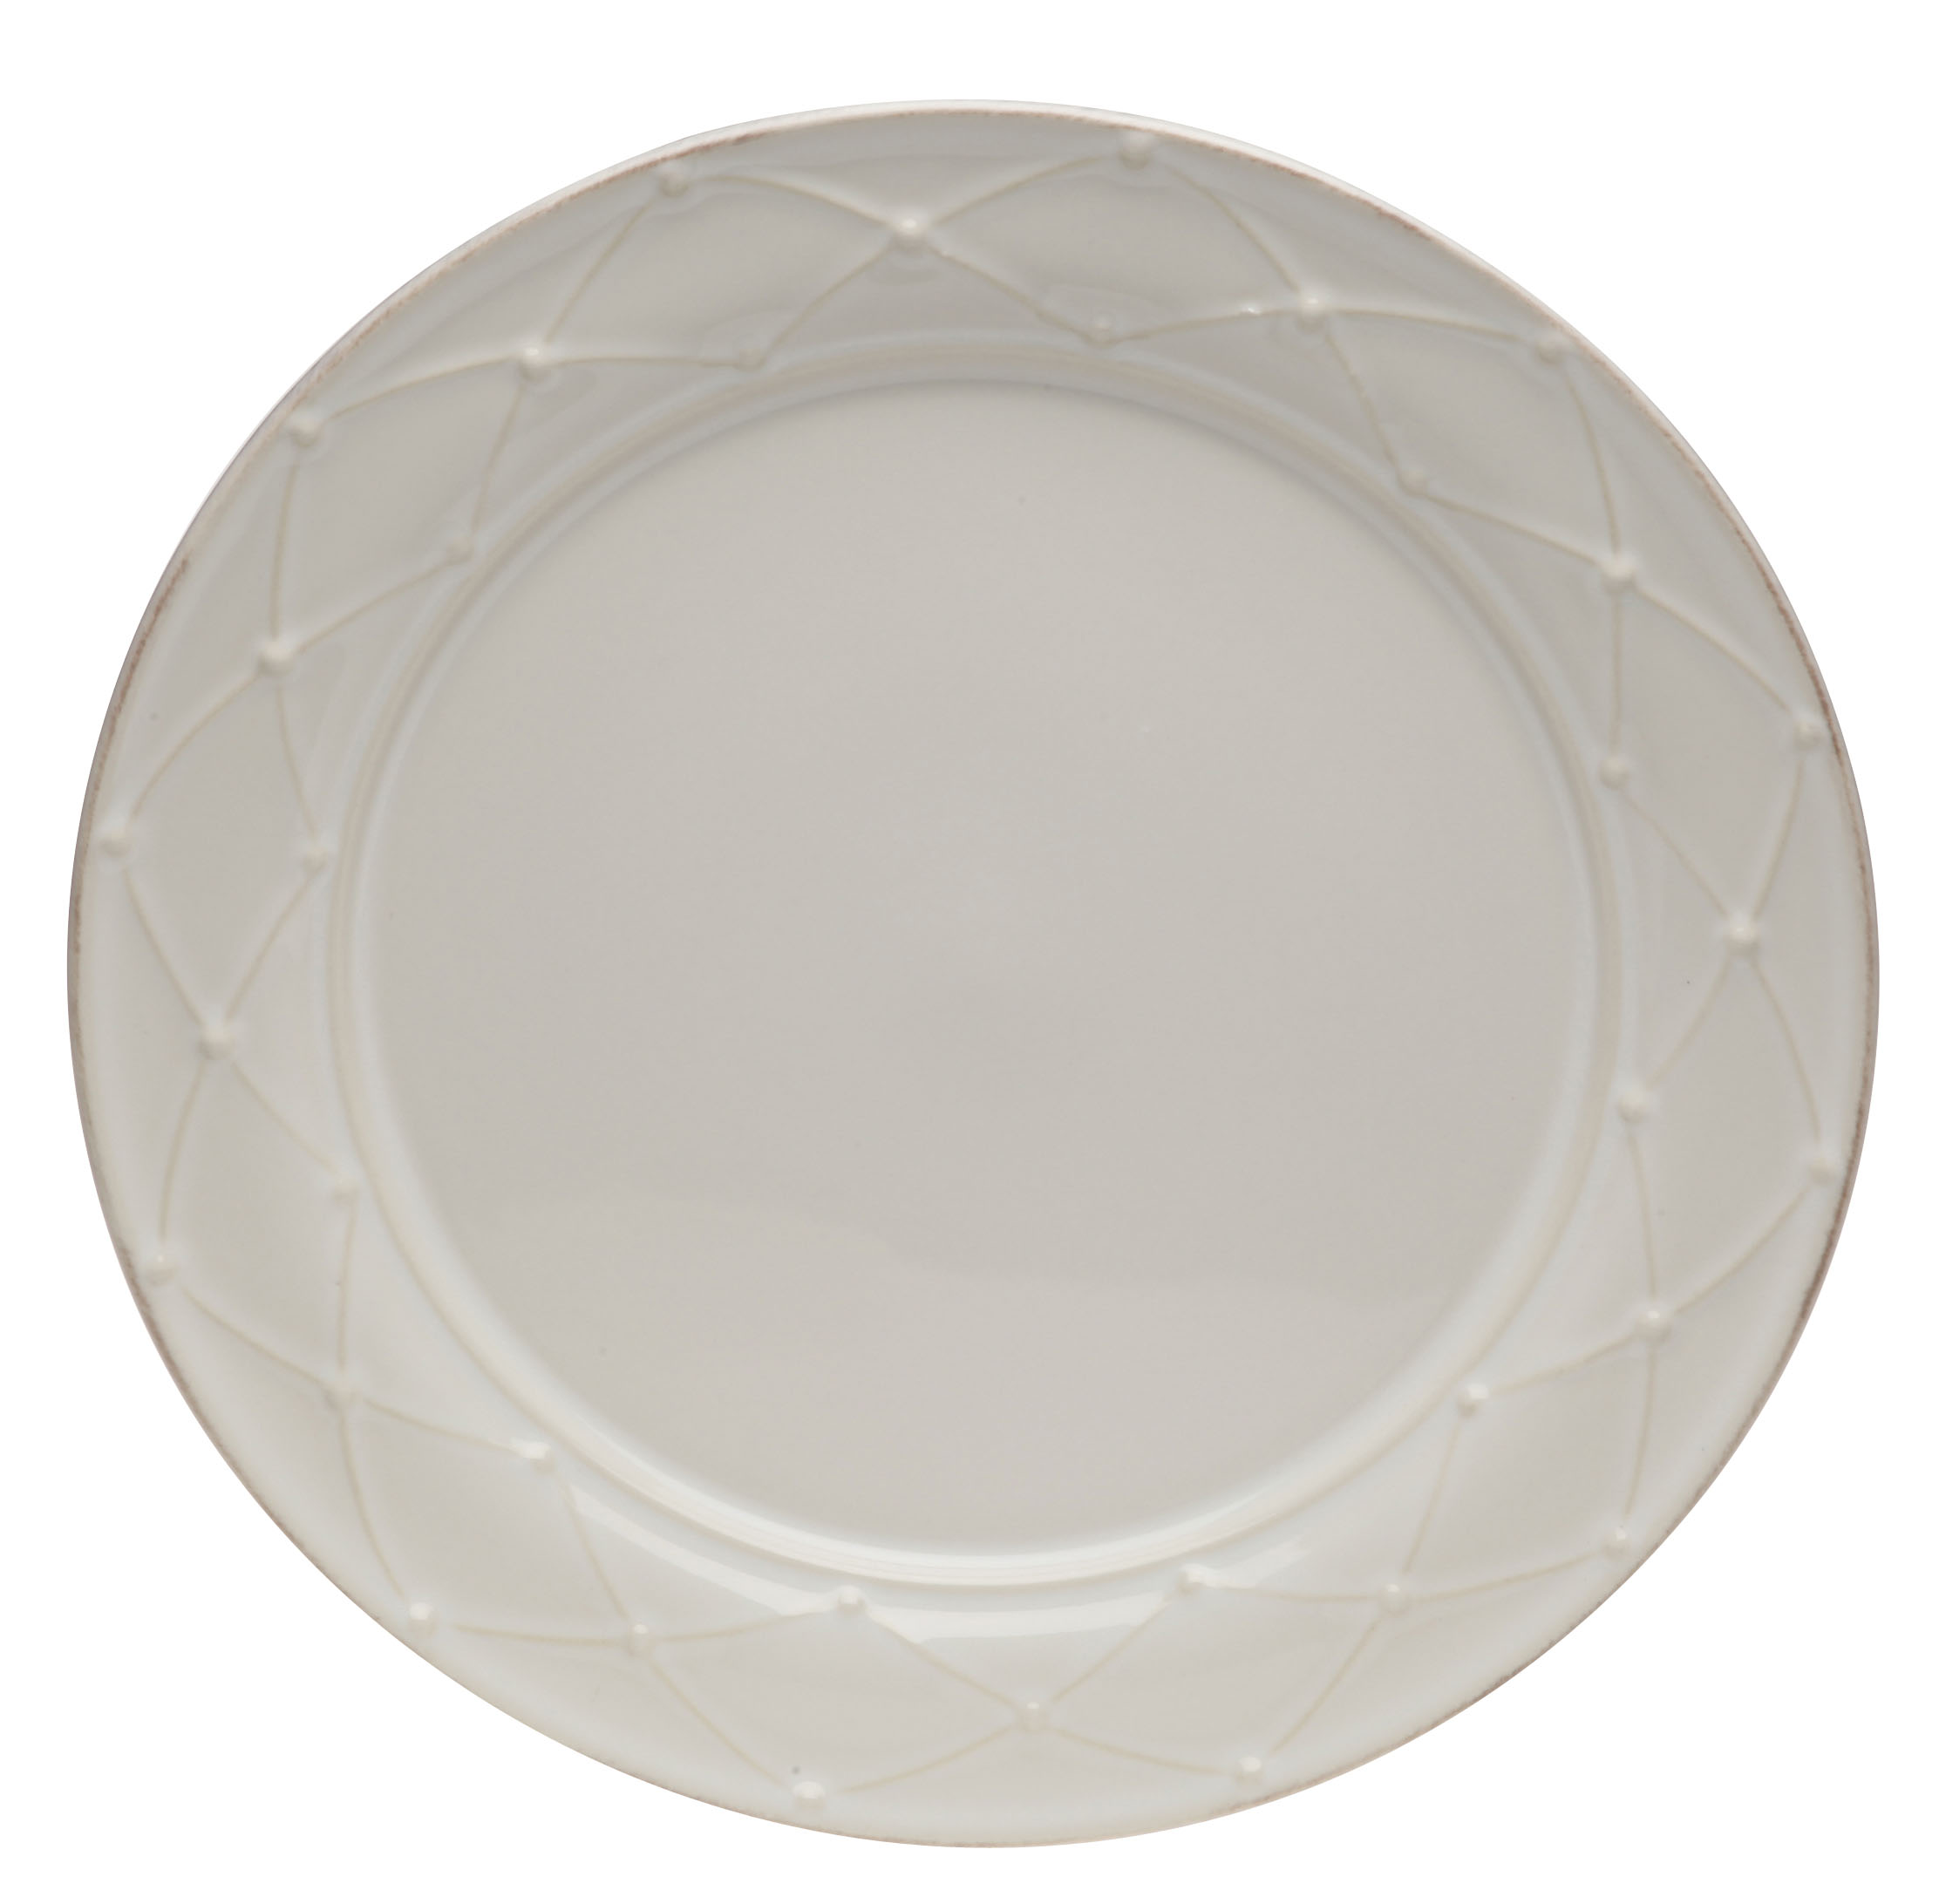 Meridian Dinner Plate Decorated White 29.7cm Sparkle Gift